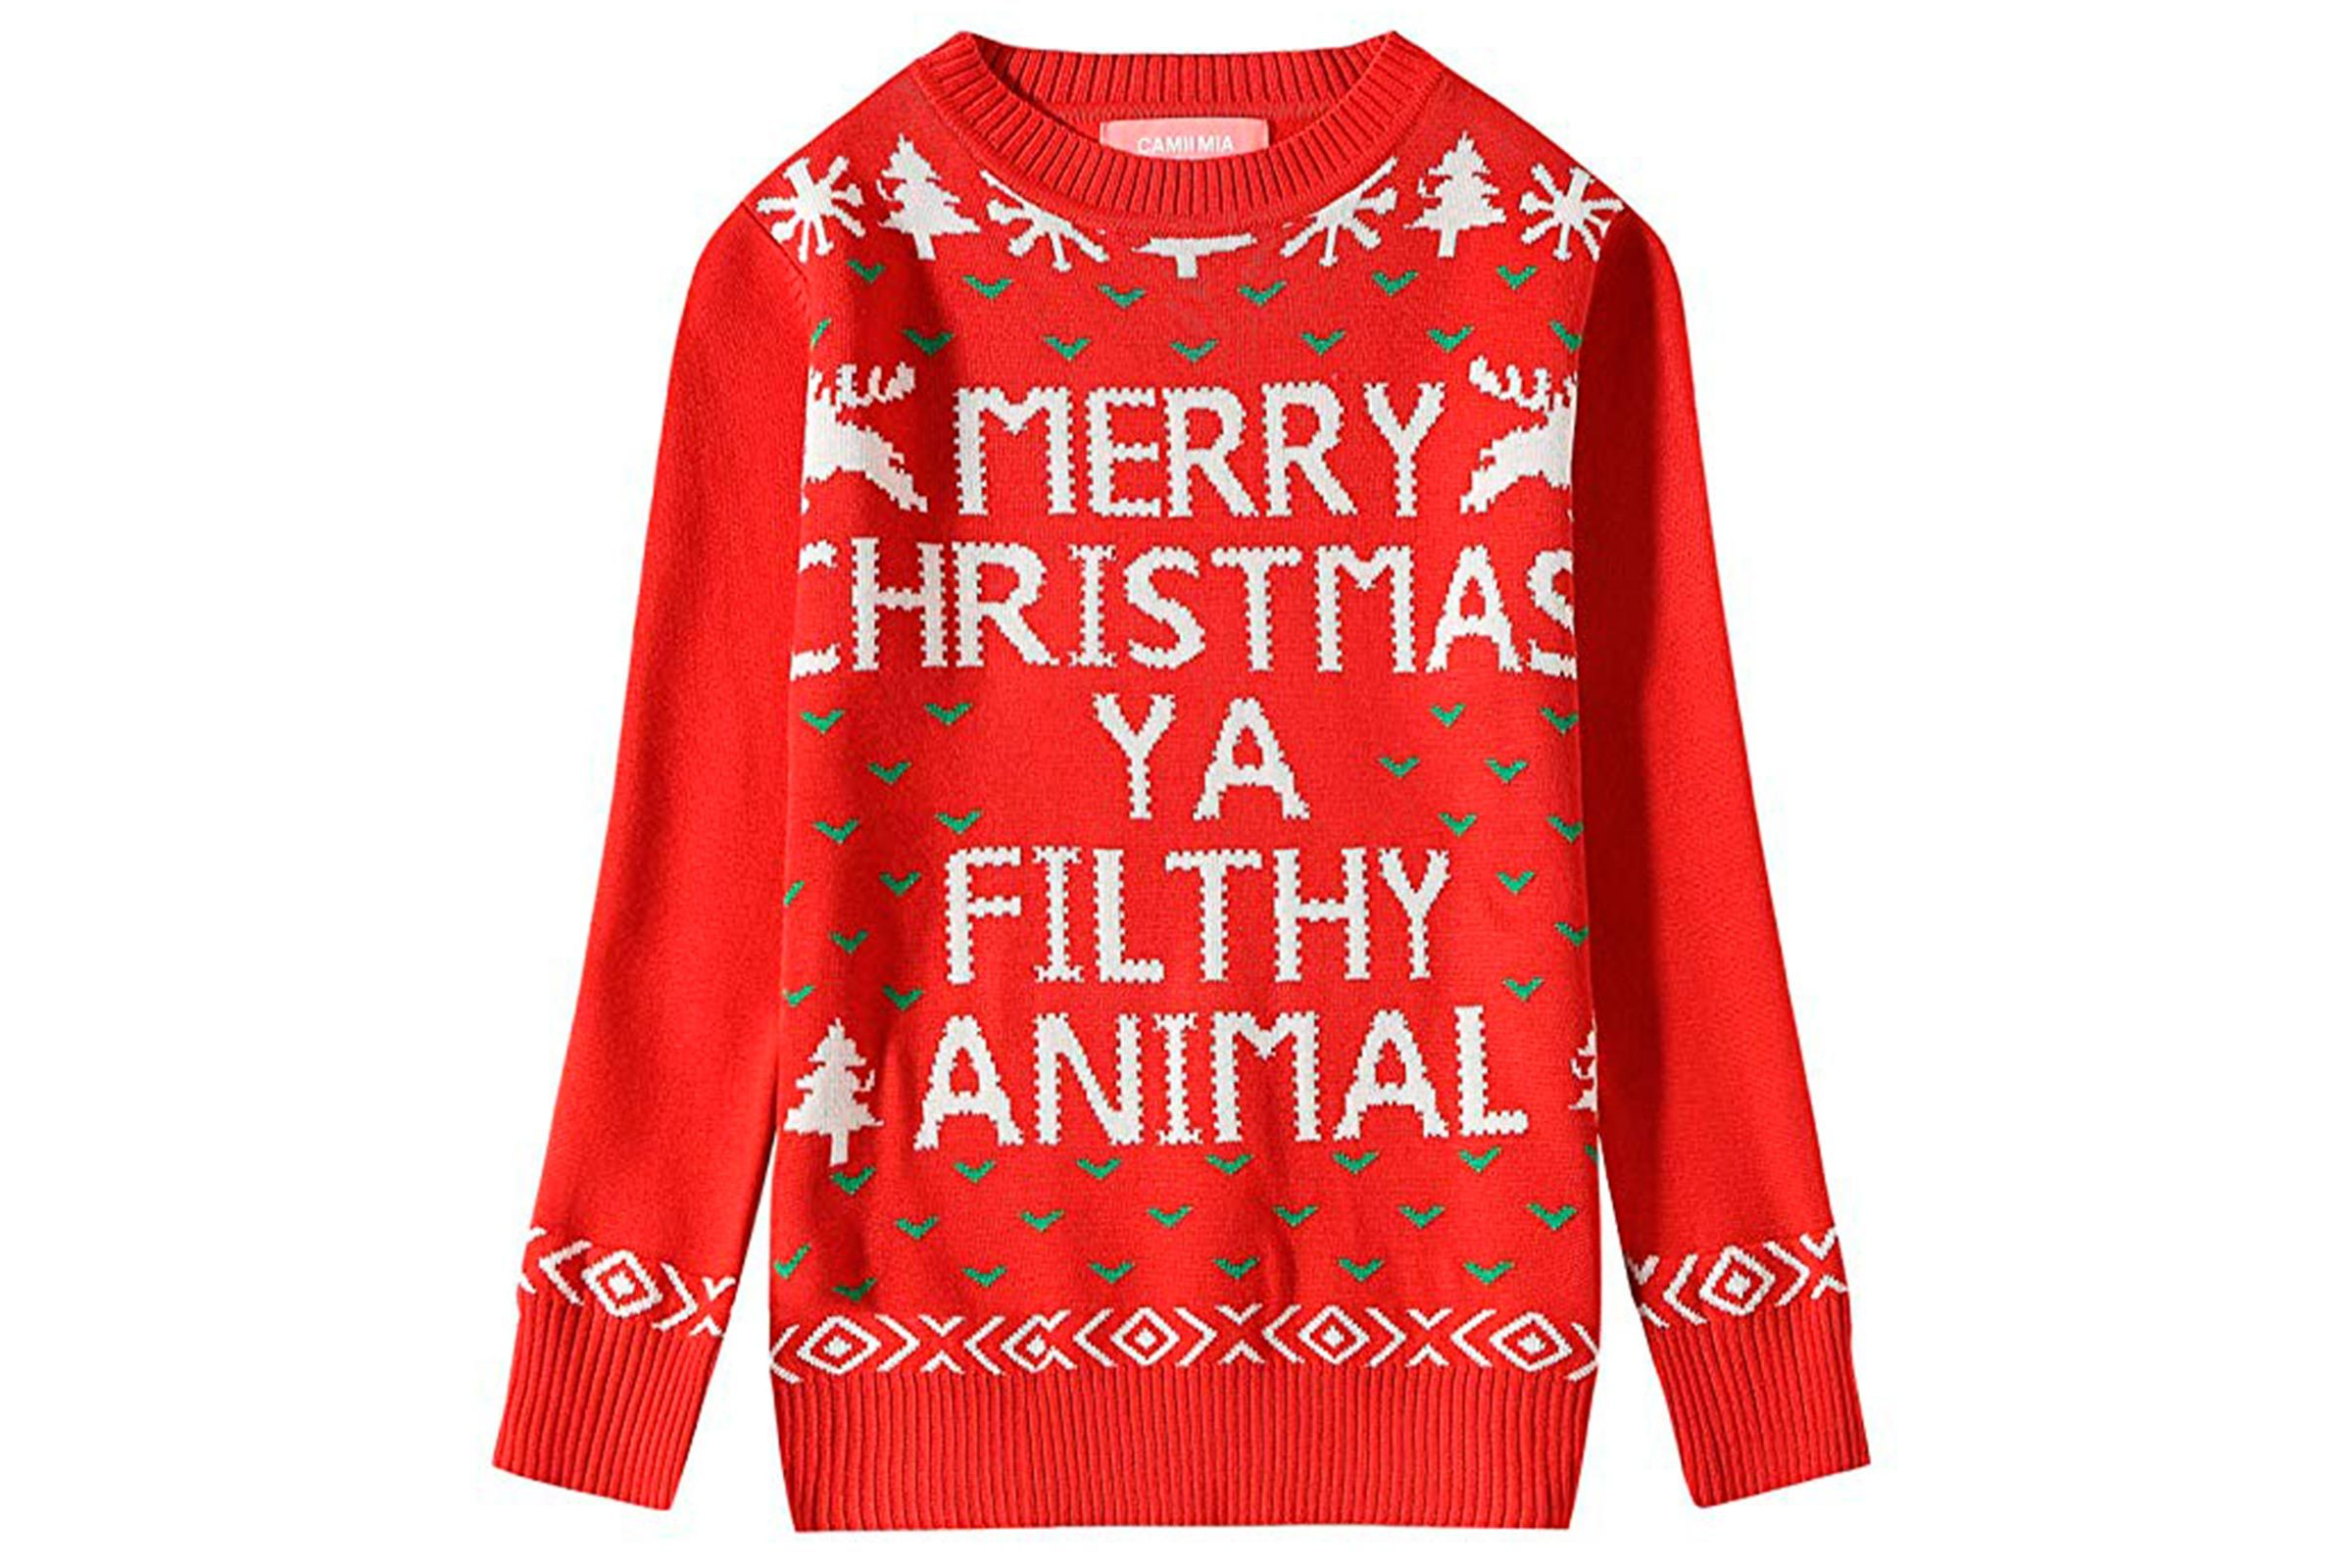 909da717094 The Best Funny Ugly Christmas Sweaters You Can Buy